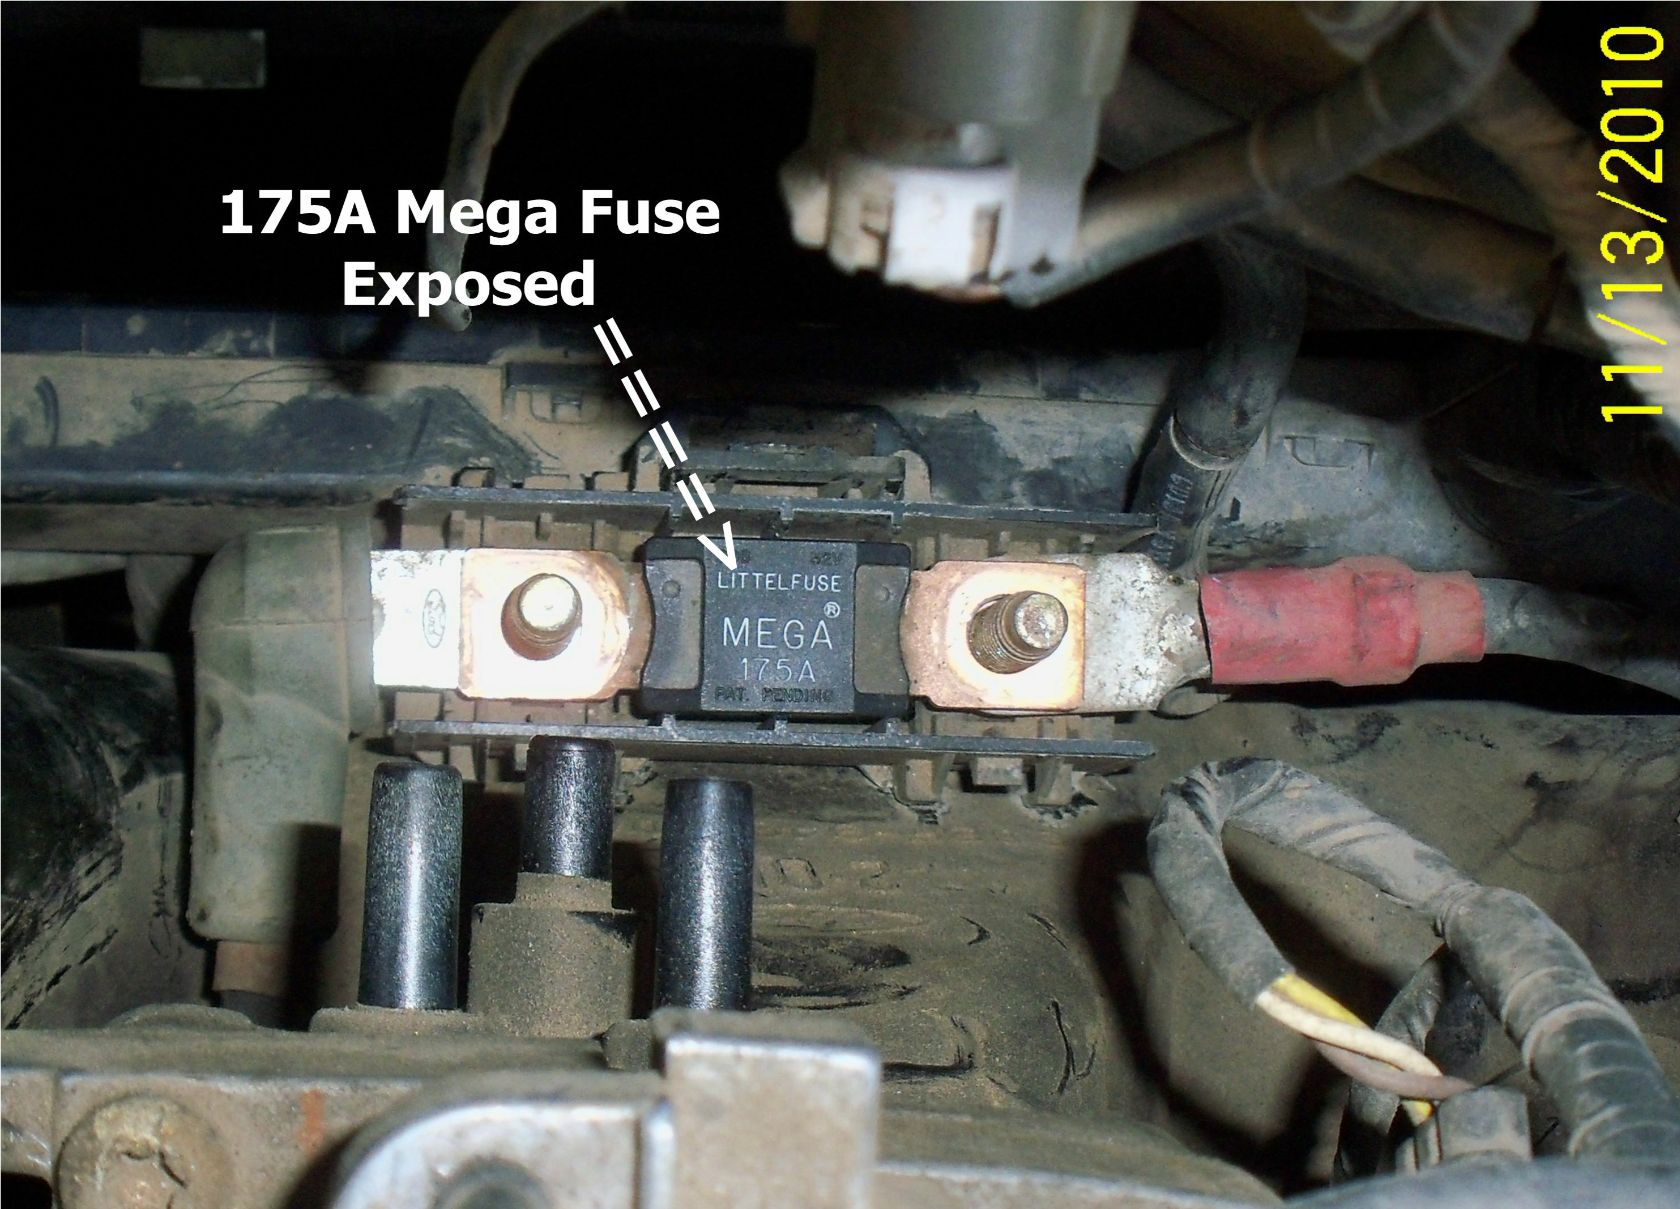 2005 Ford Explorer Fuse Block Diagram Starting Know About Wiring 1996 F150 Box Contour 2 0l Replaced Alternator But Battery Panel 05